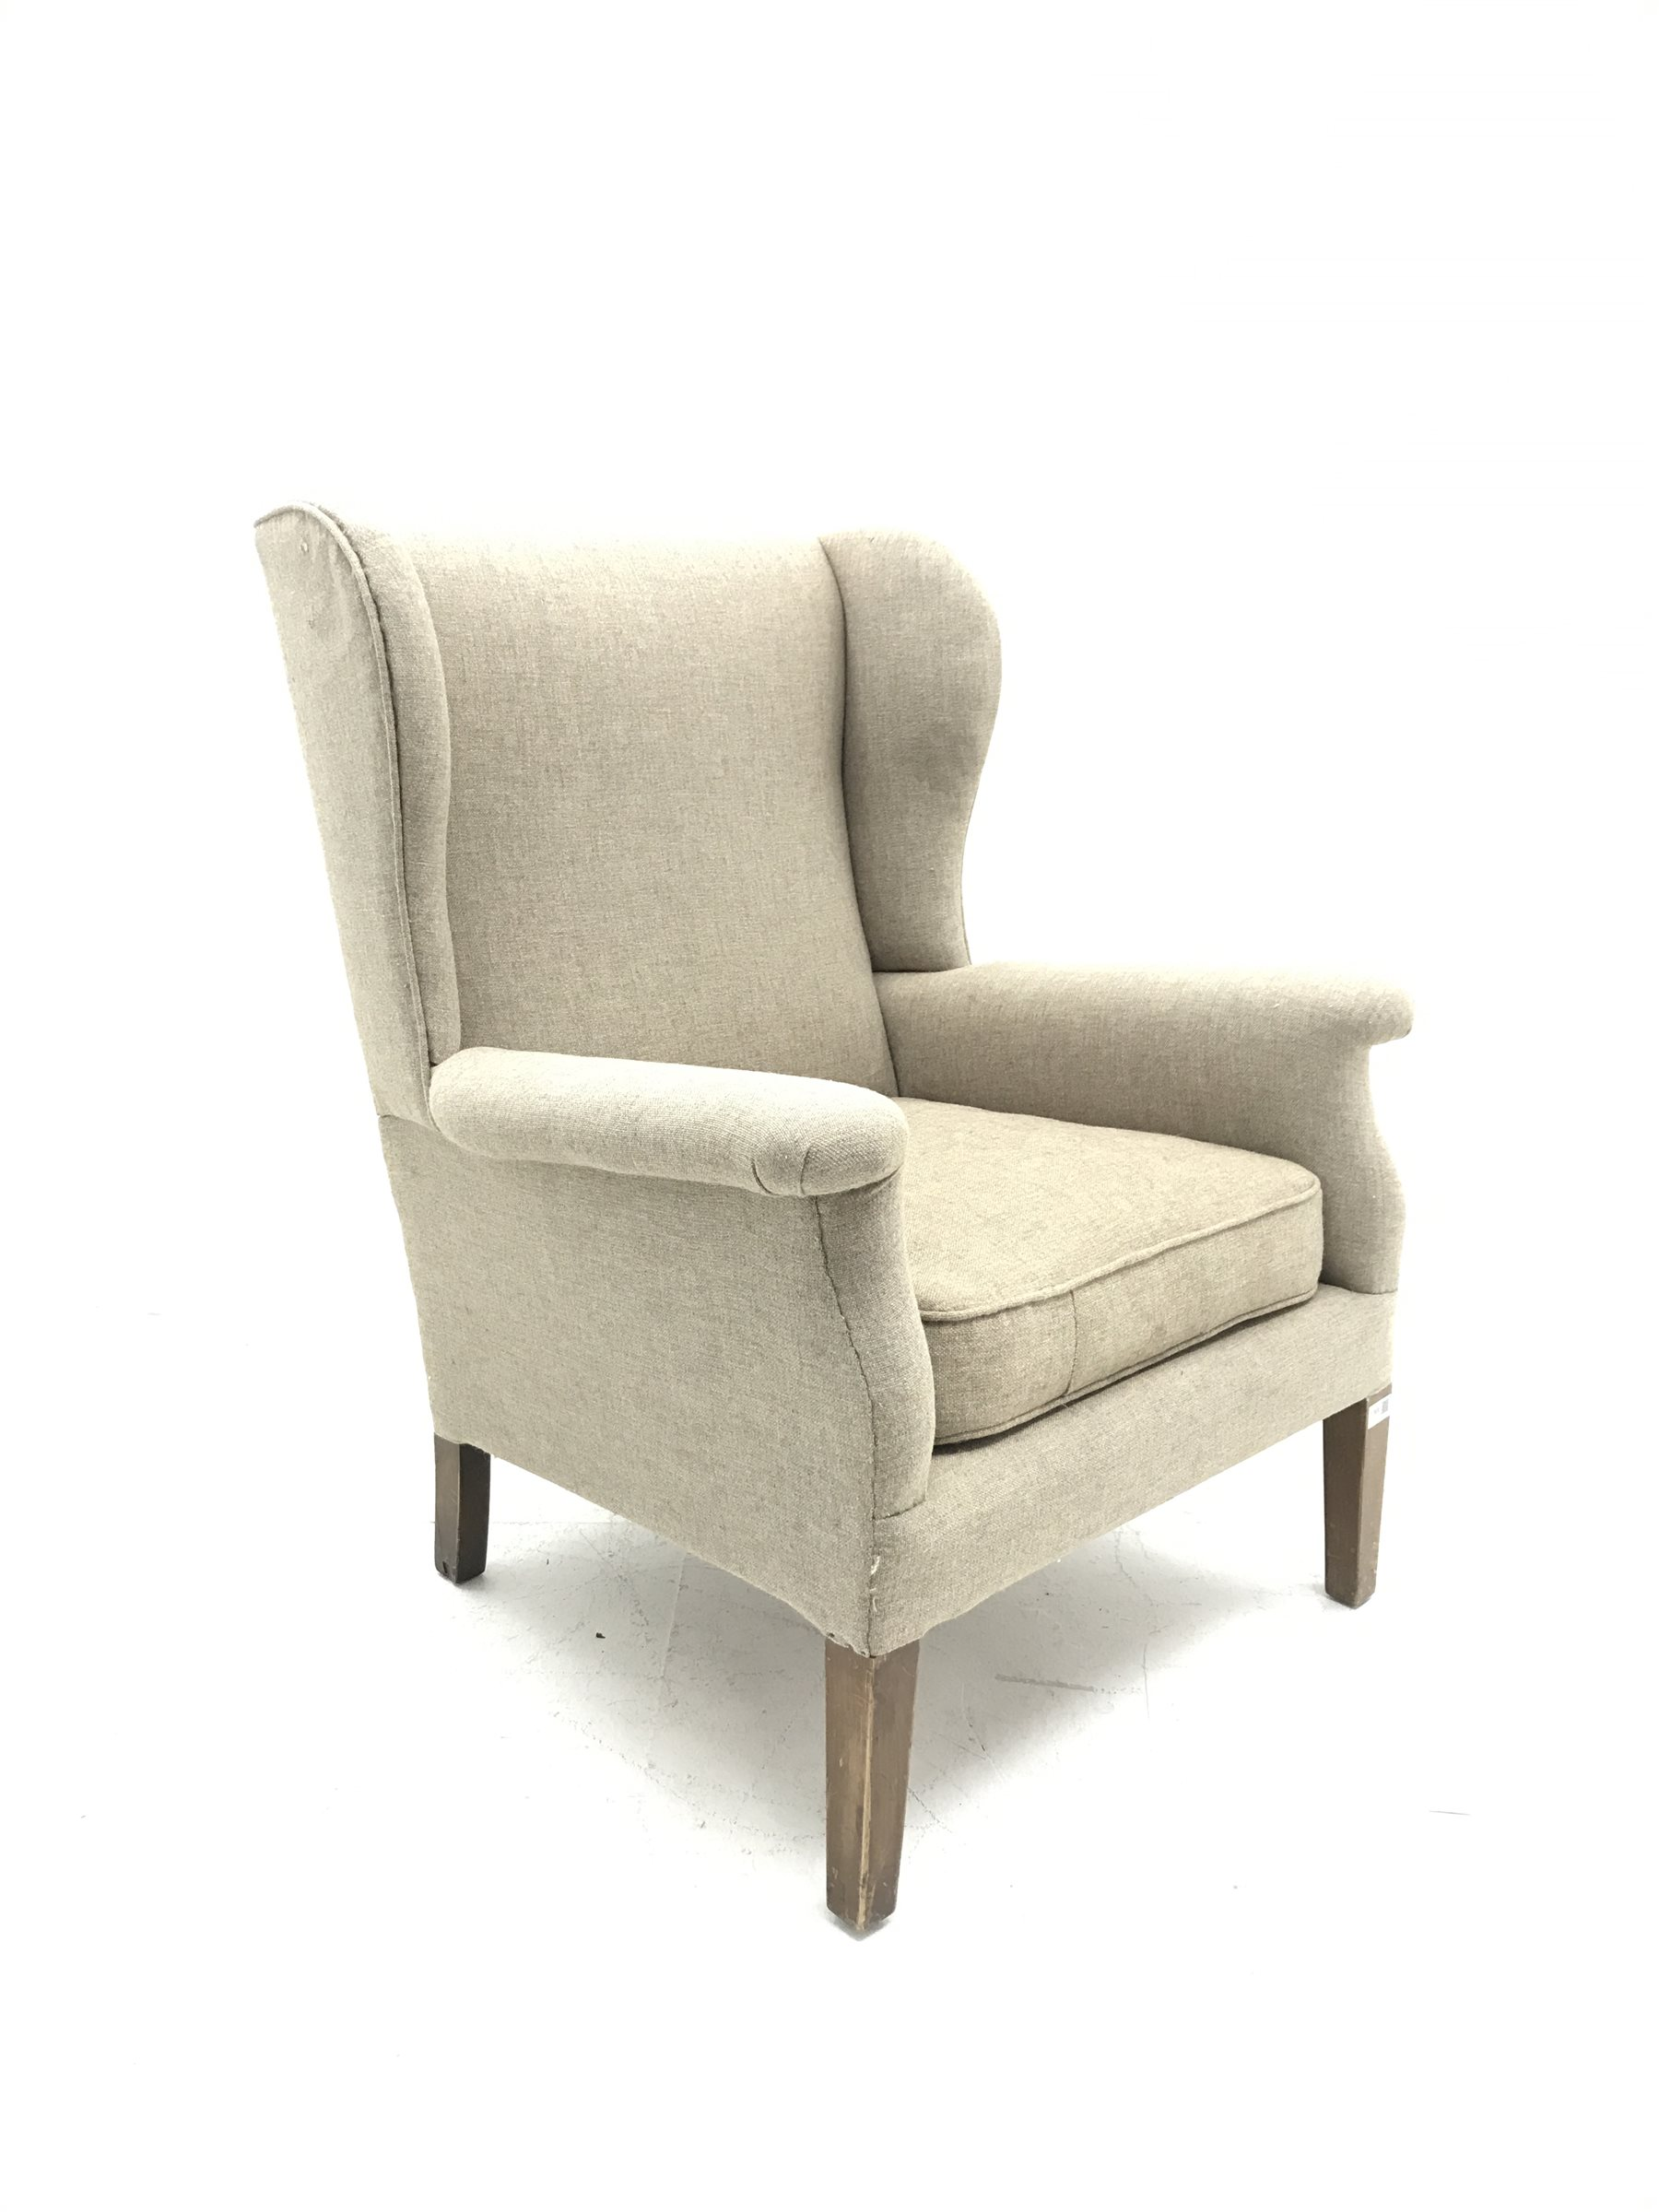 Vintage Parker Knoll wing back armchair, upholstered in natural fabric, W75cm, H97cm